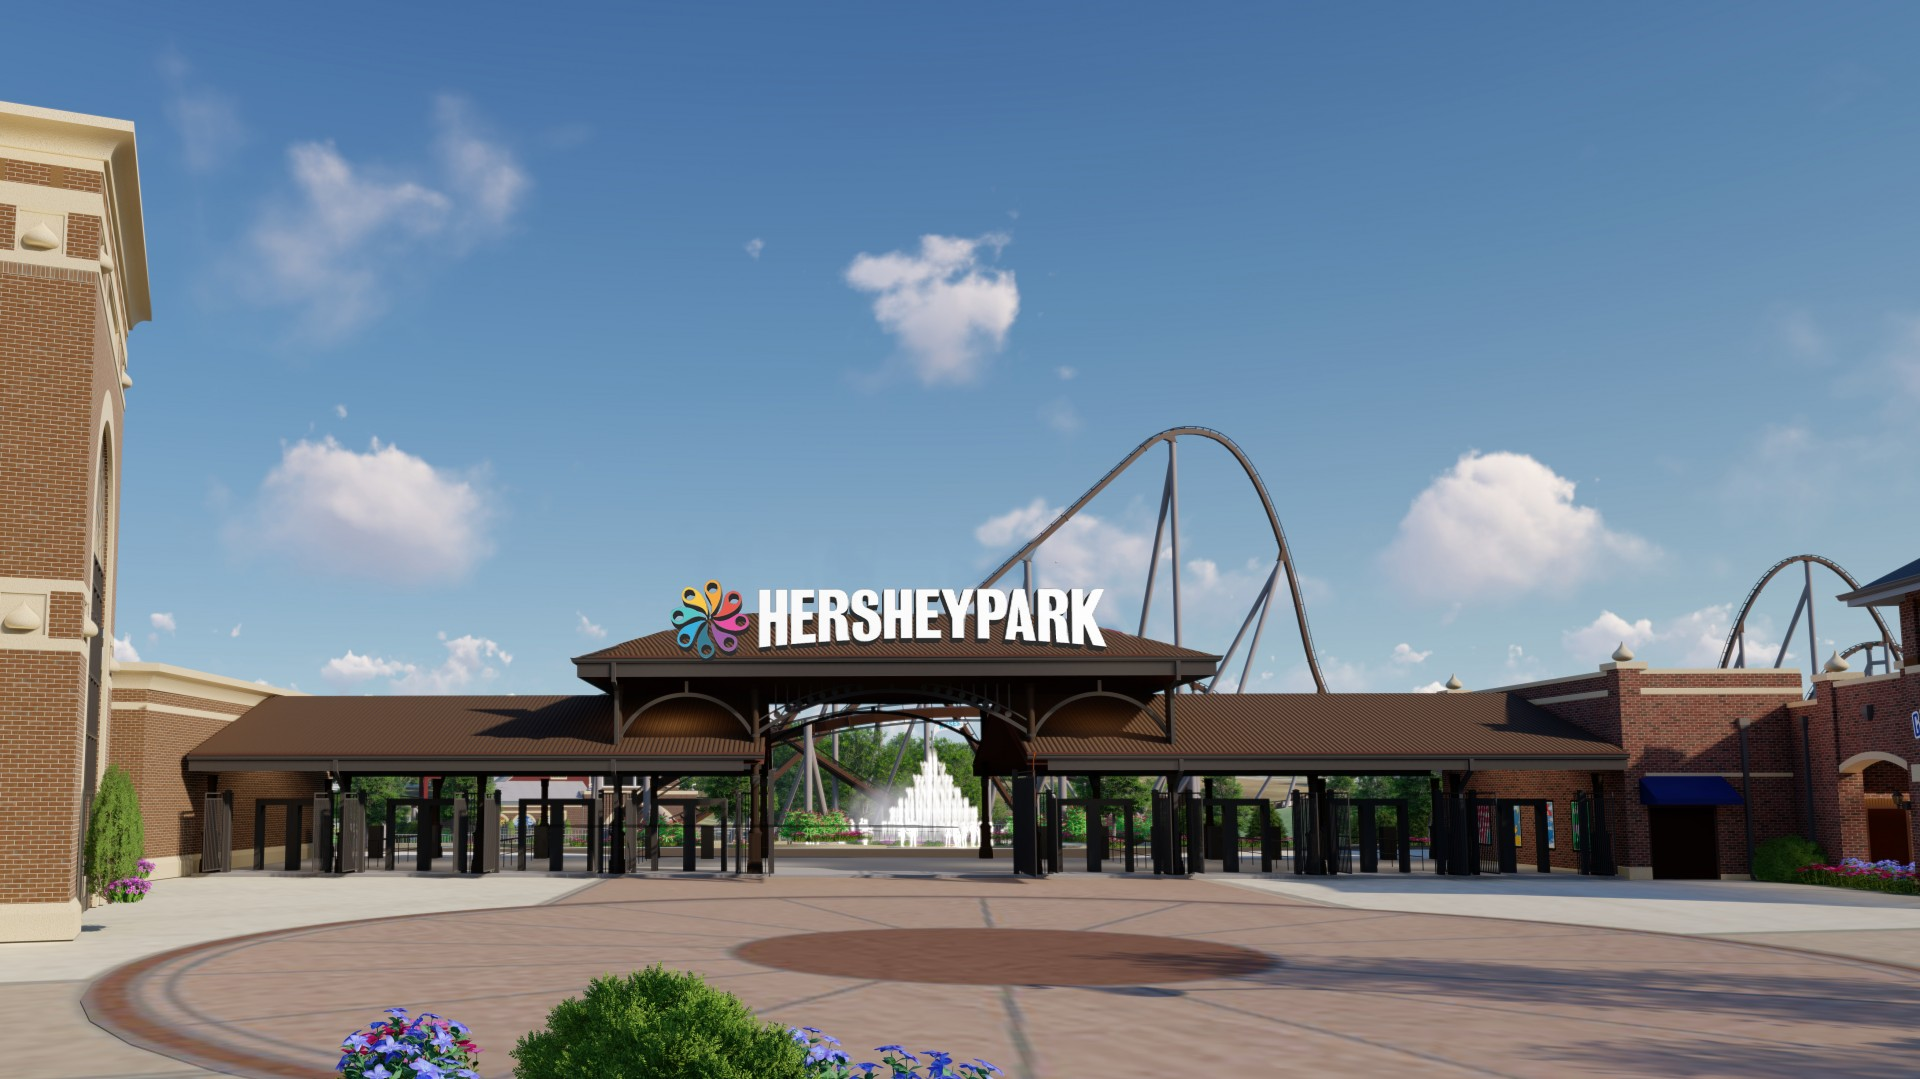 Hersheypark Launches Summer Best Price Offers